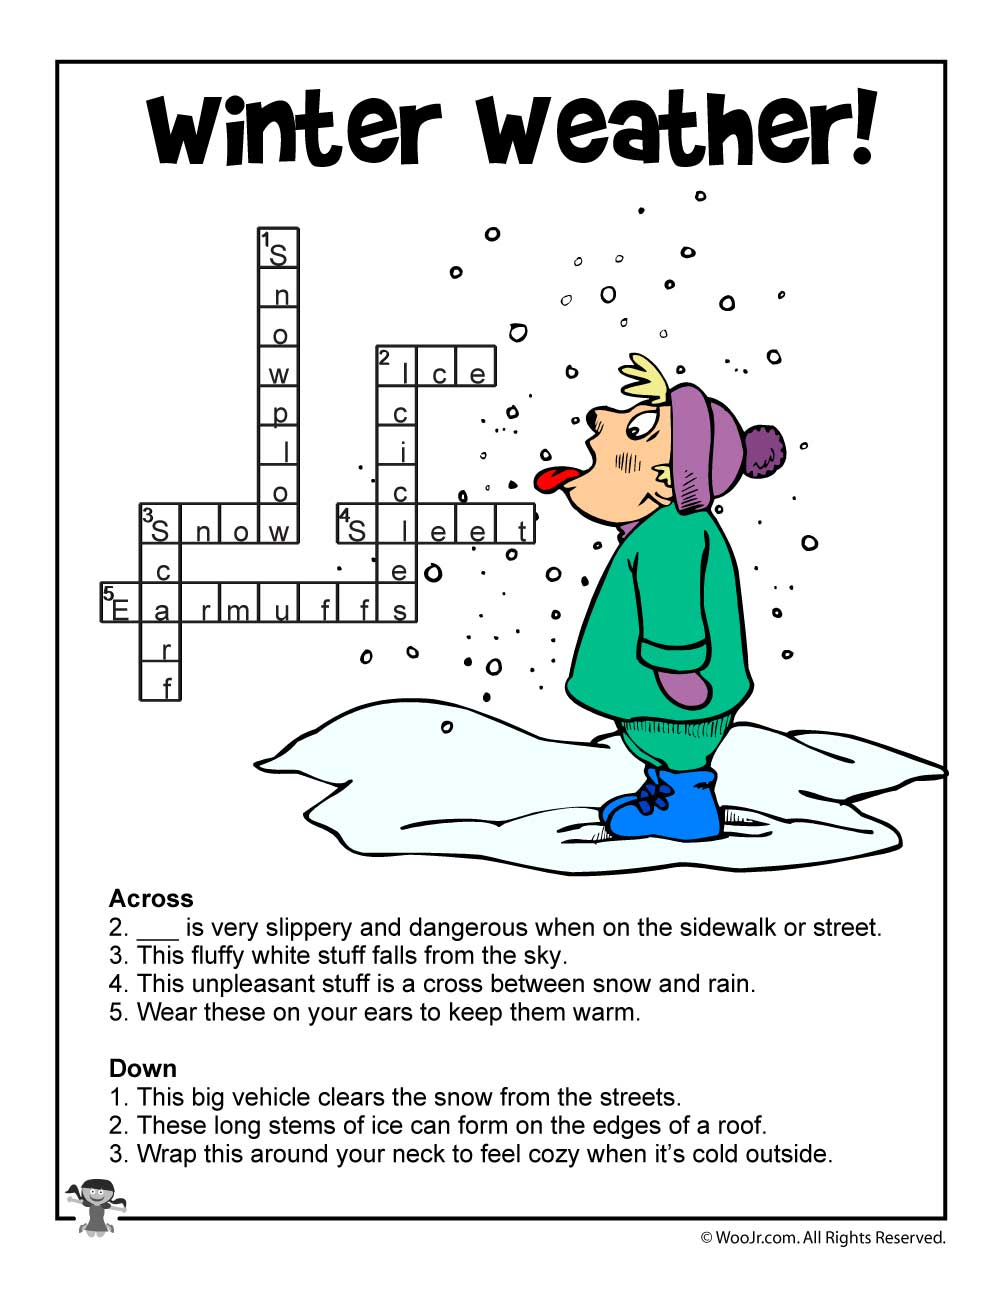 Winter Weather Crossword Puzzle Answer Key | Woo! Jr. Kids Activities - Printable Crossword Puzzles Winter